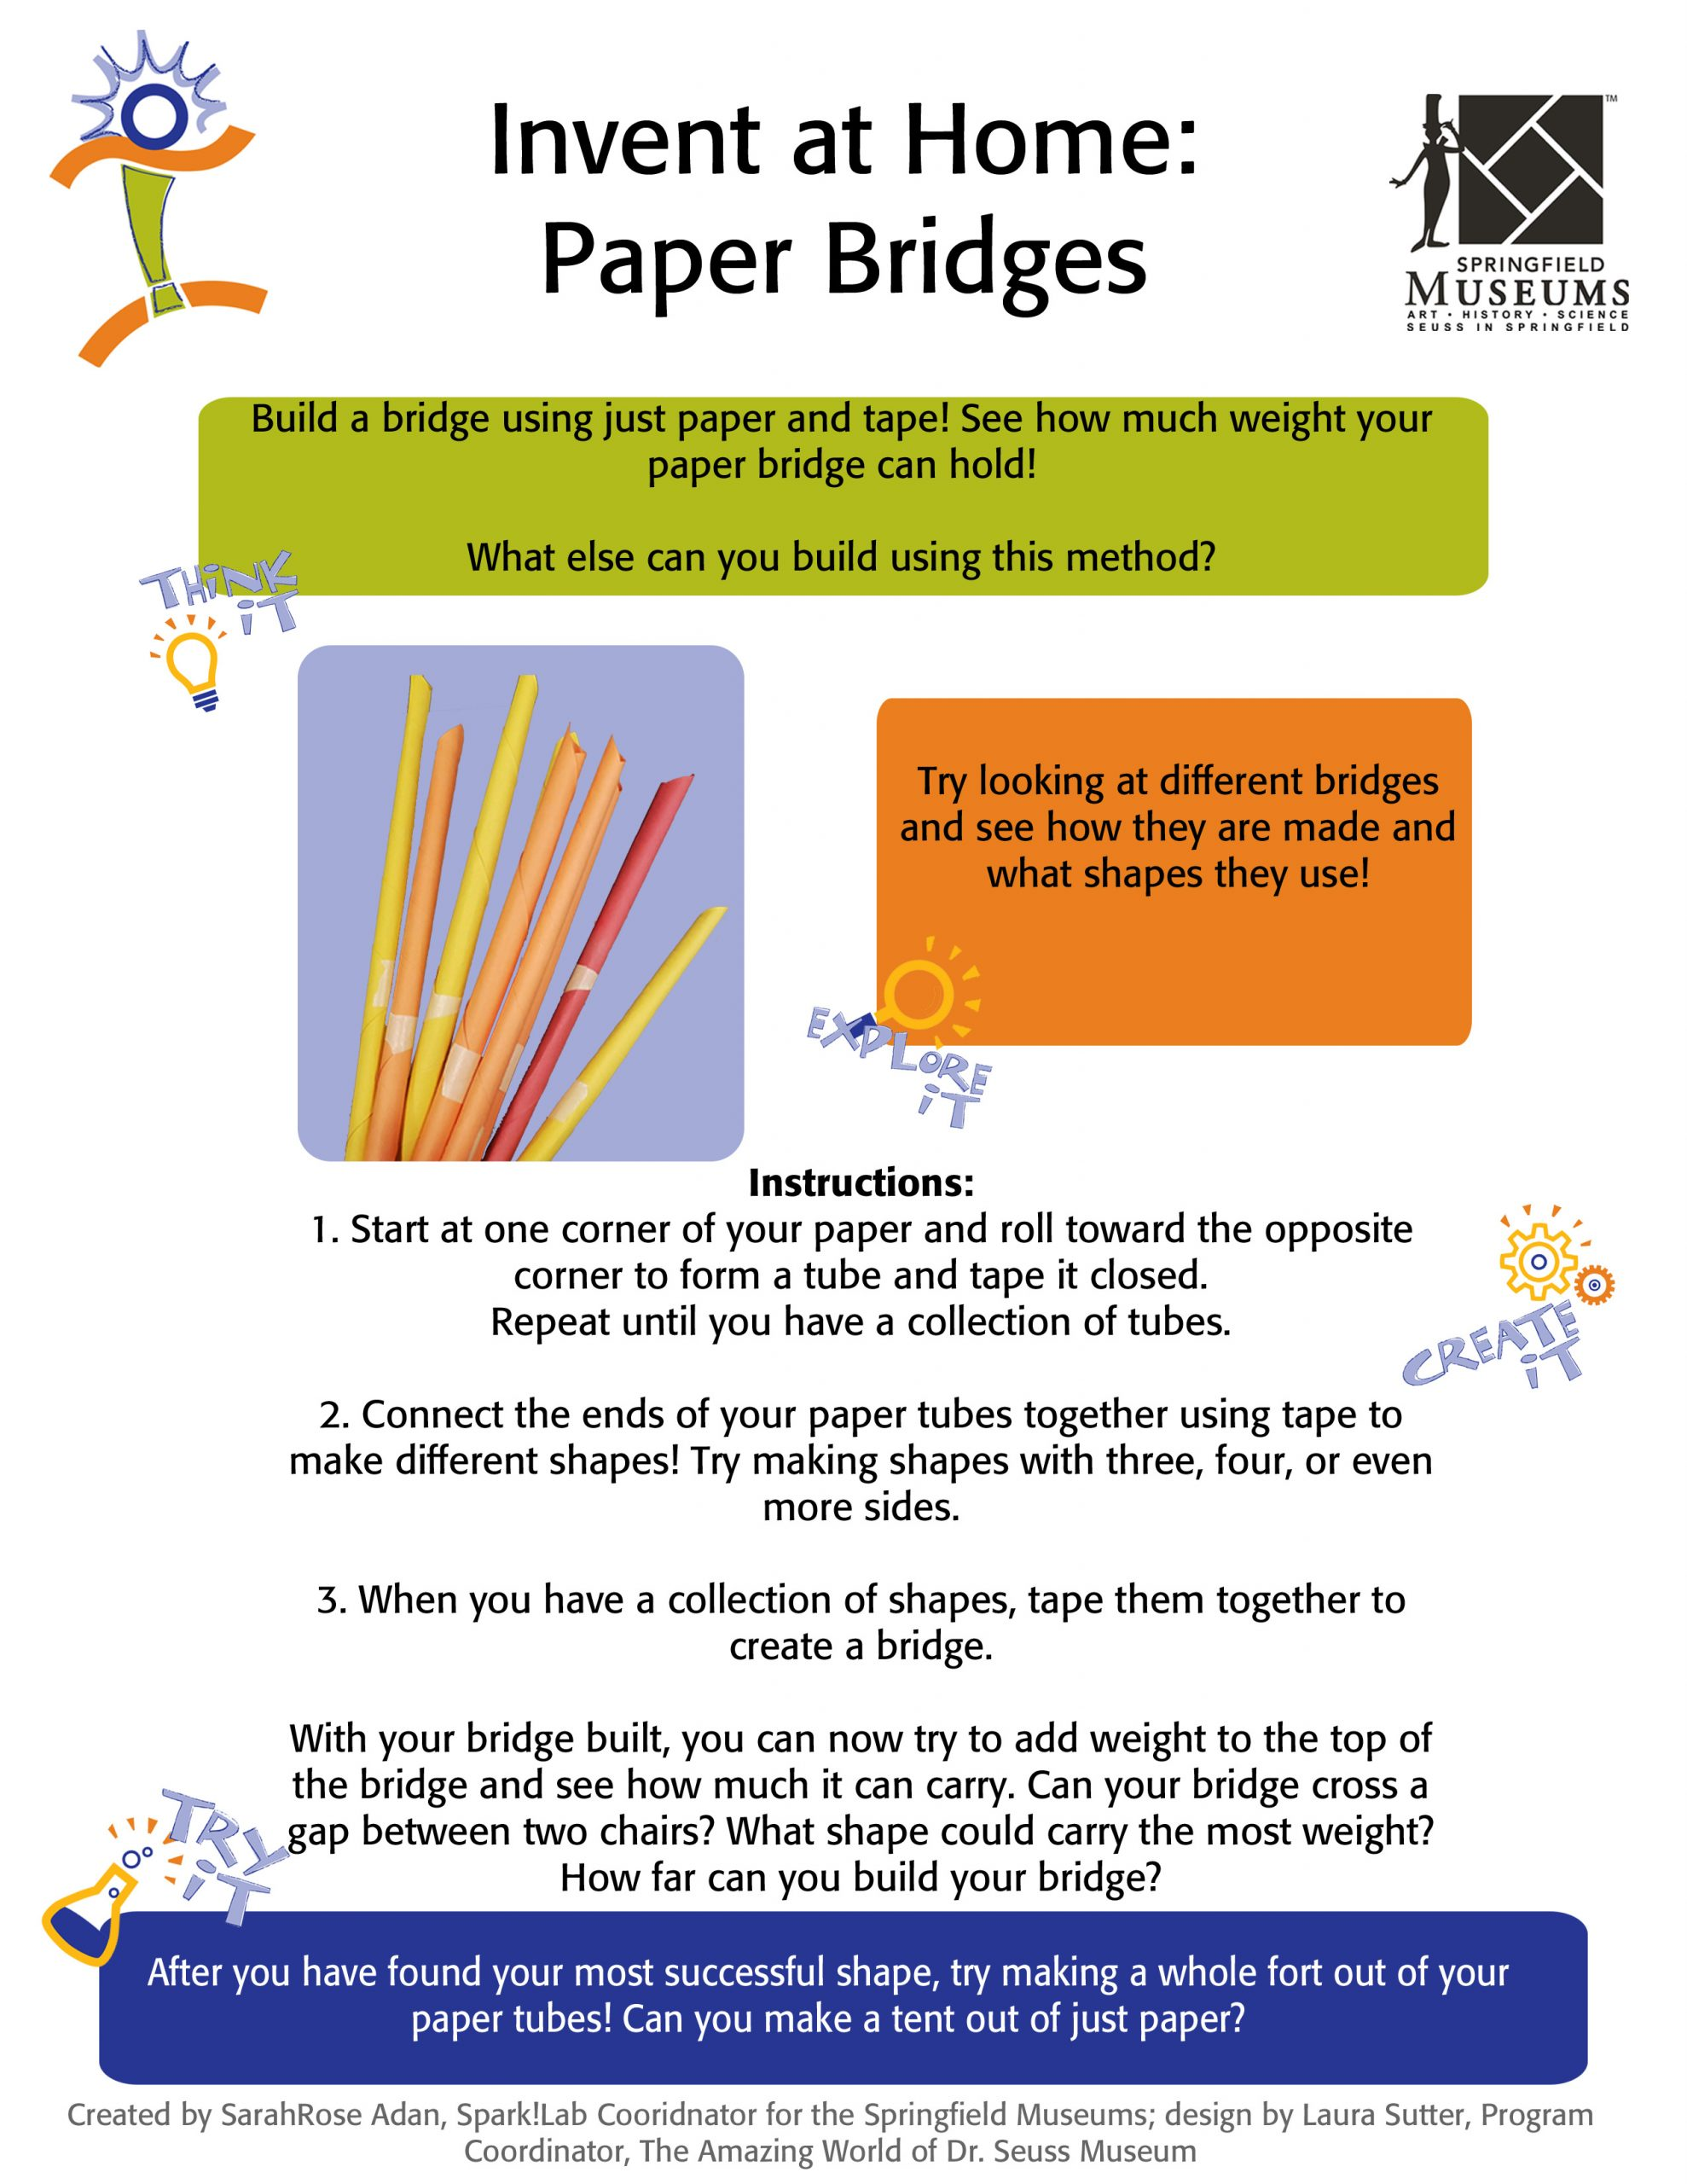 Invent at Home: Paper Bridges Activity Instructions